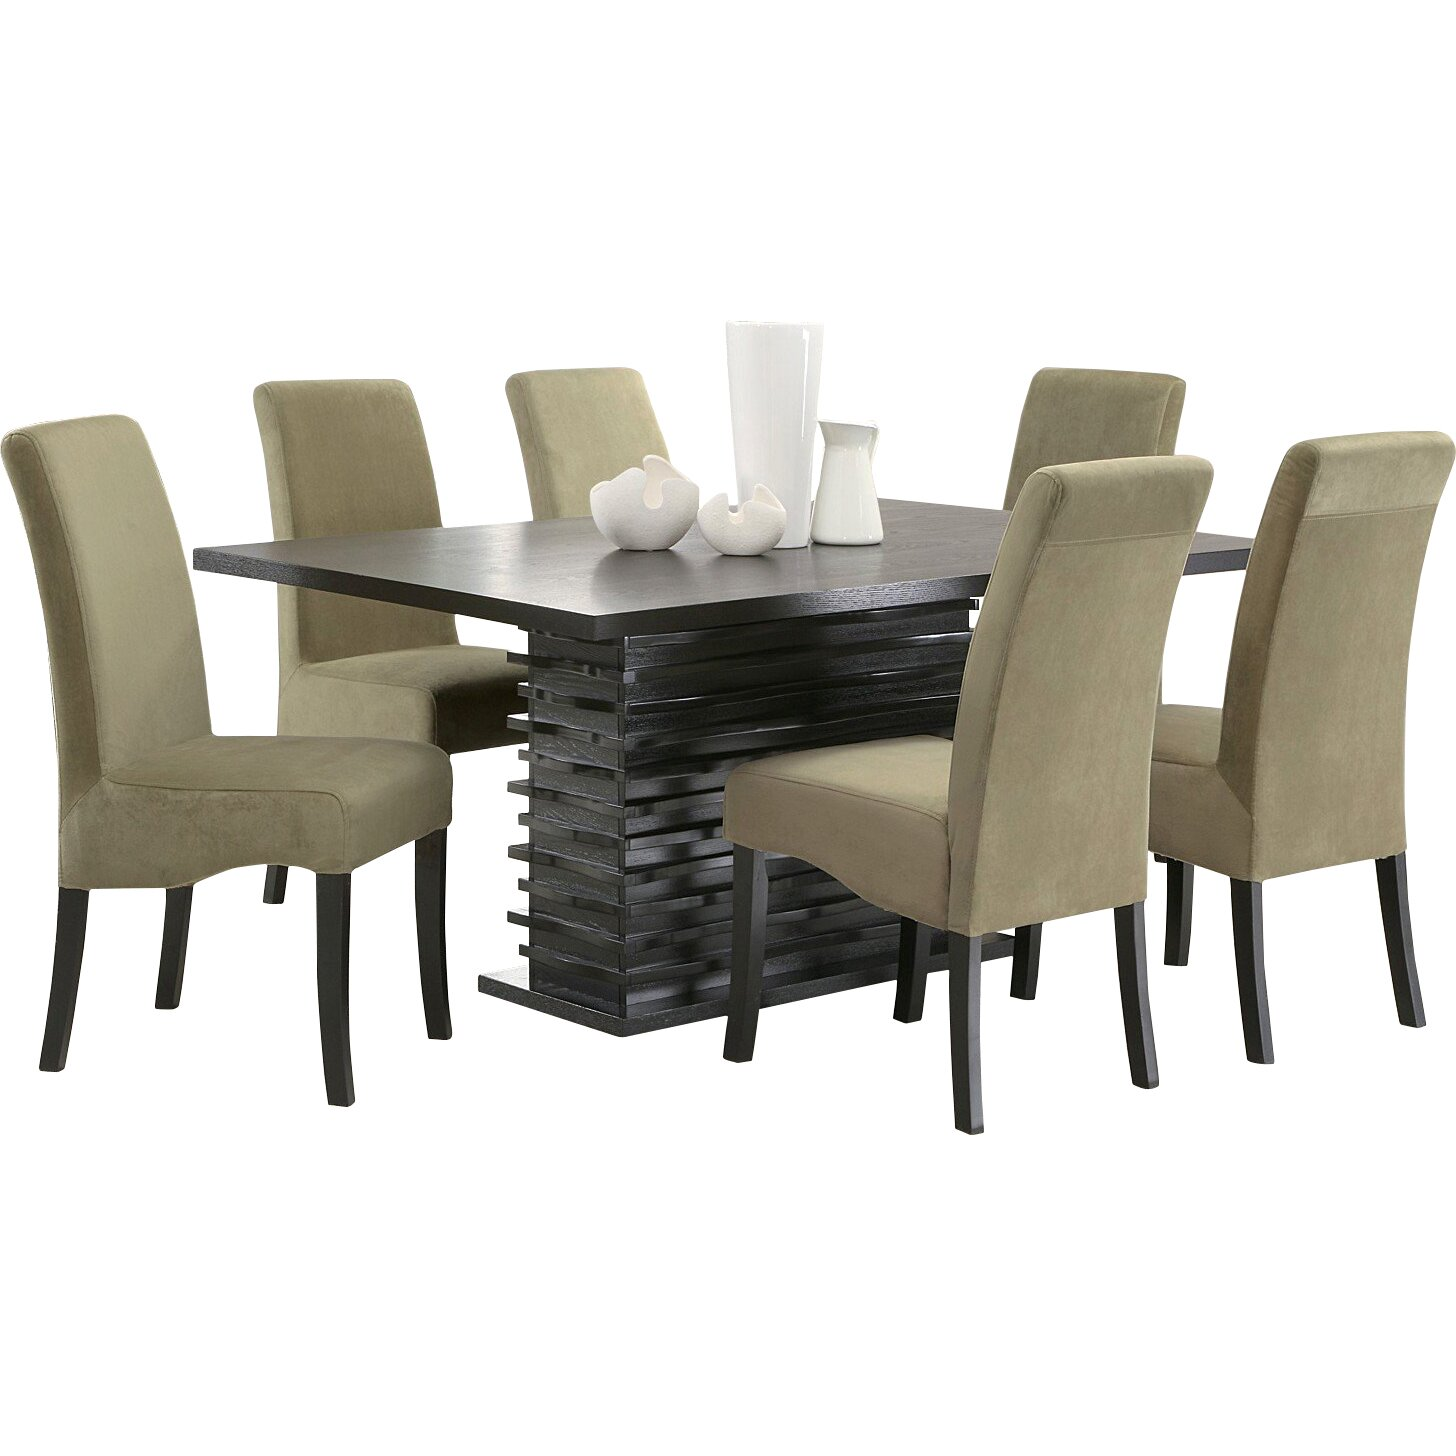 Infini furnishings jordan 7 piece dining set reviews for 2 piece dining room set